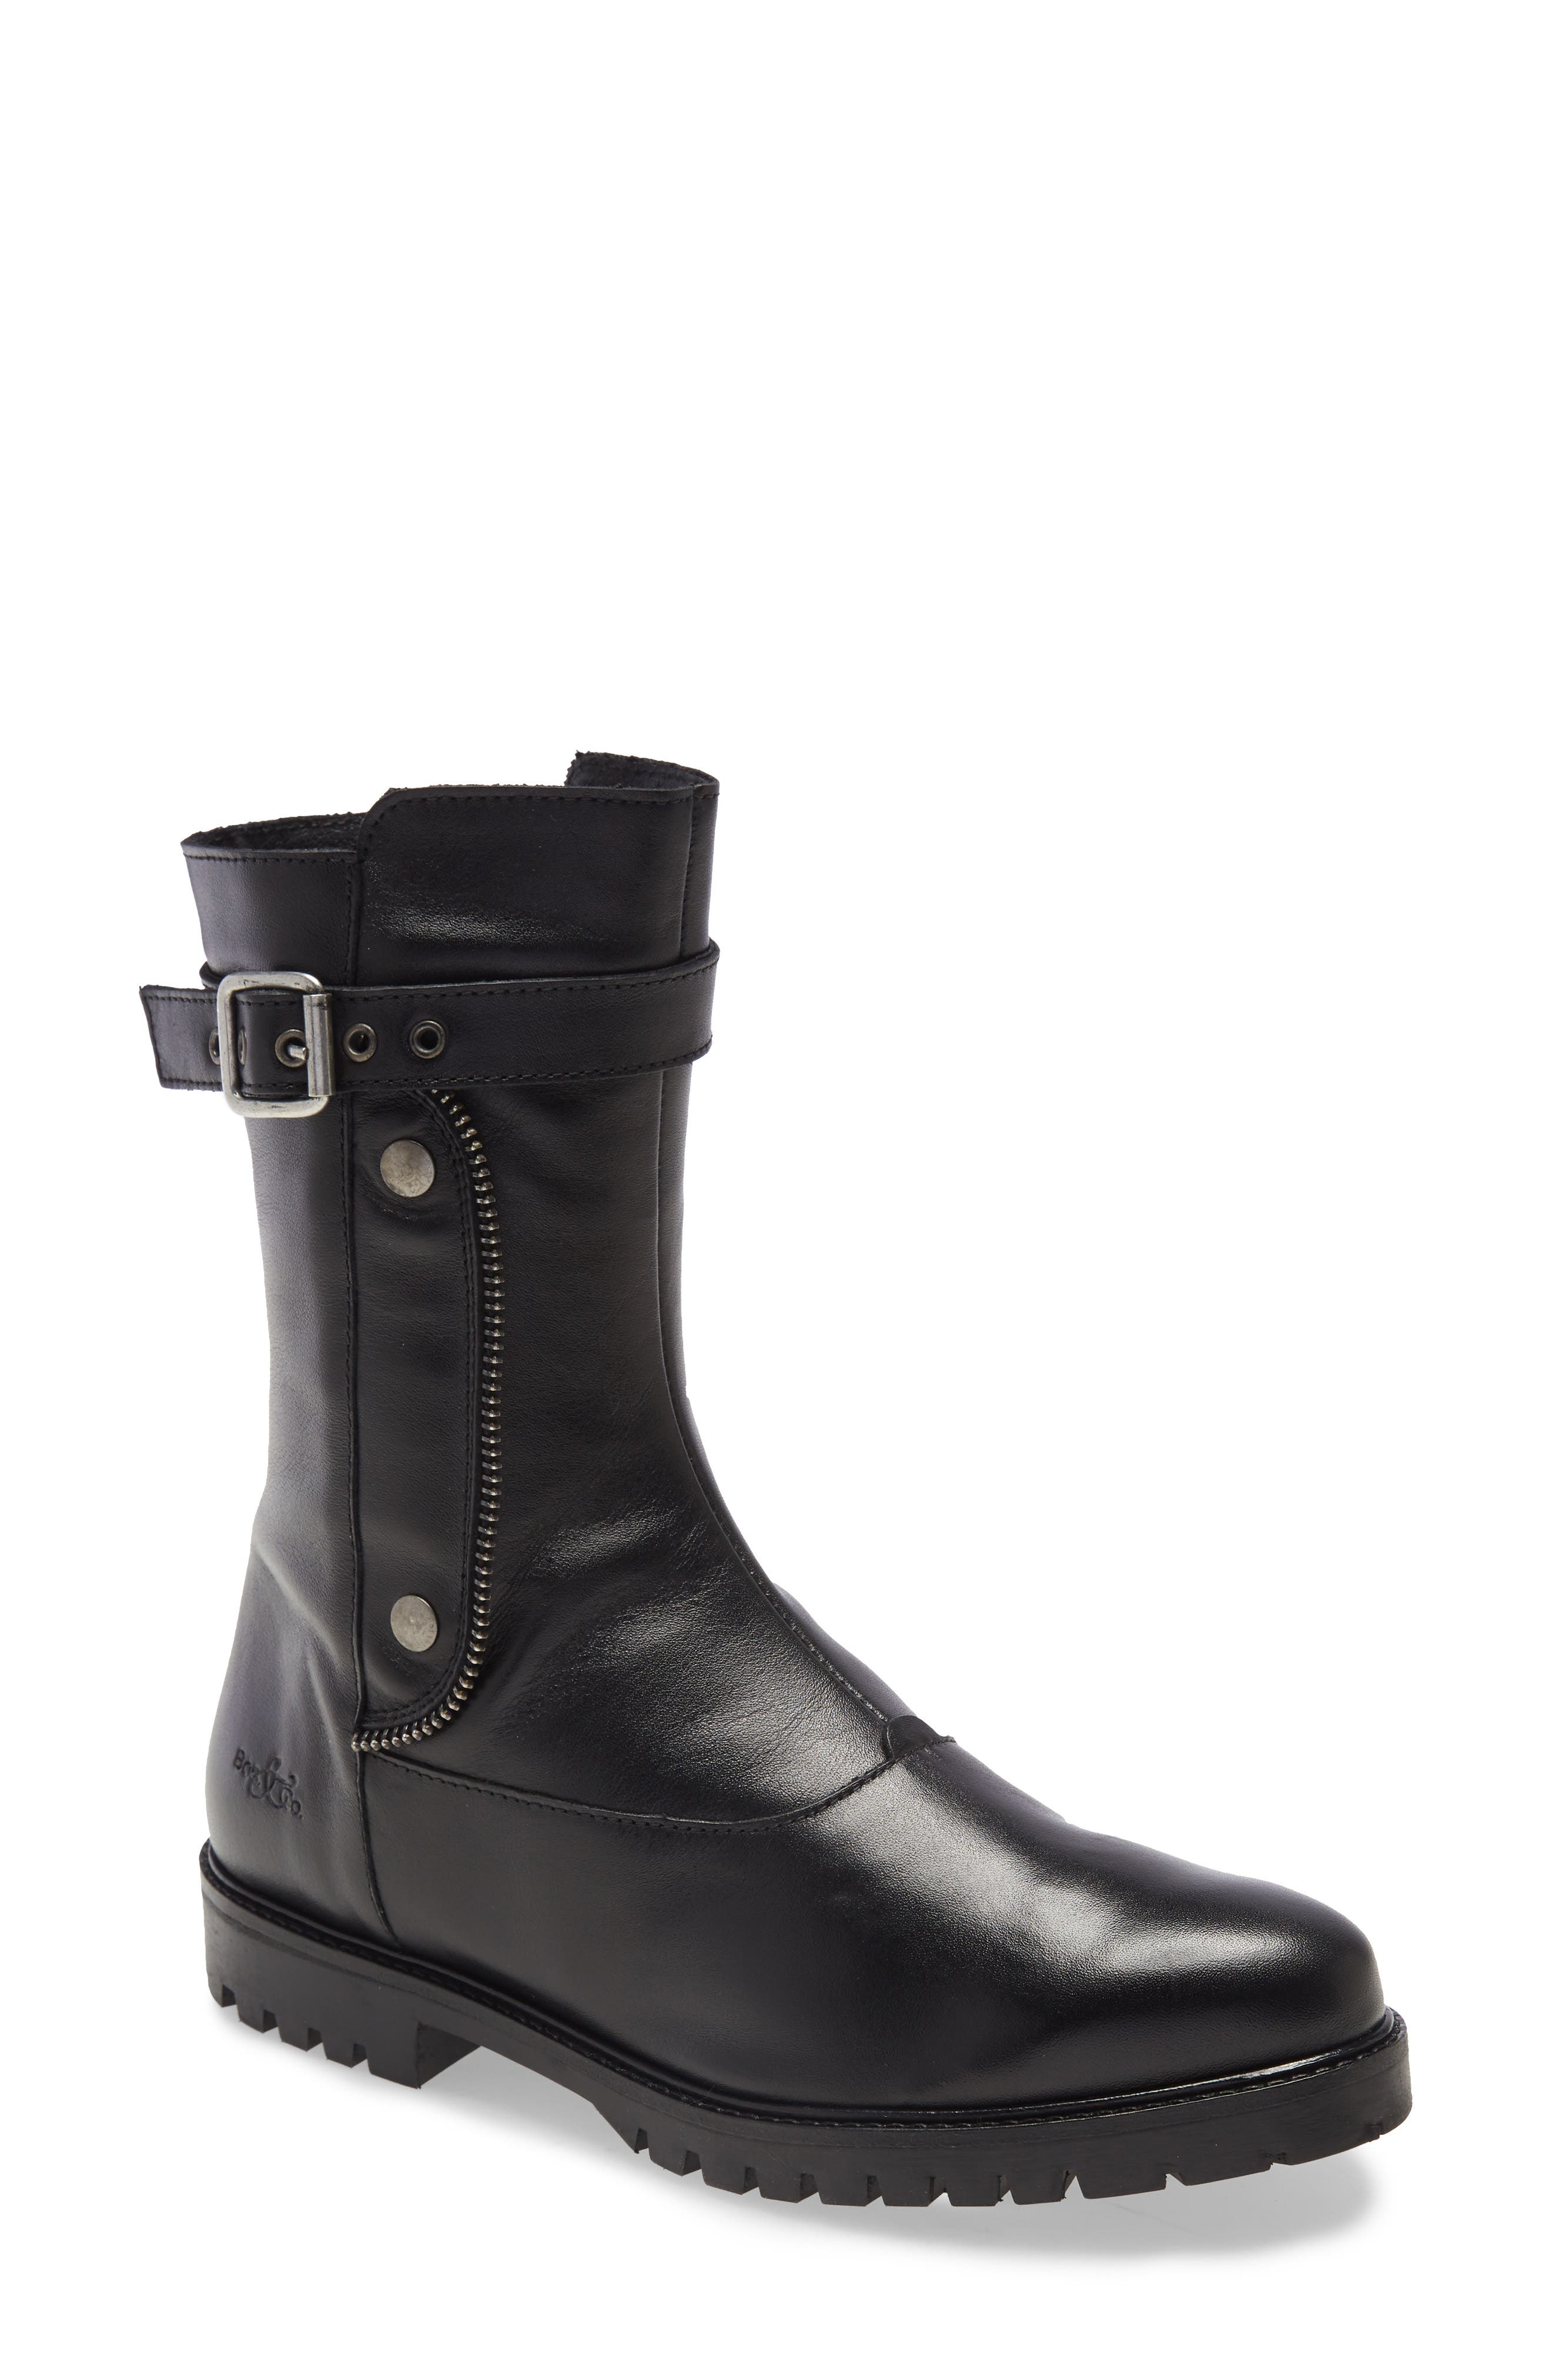 A buckle strap and decorative zipper trim add moto-chic touches to a smooth leather boot that\\\'s a versatile, waterproof standby. Style Name: Bos. & Co Bash Waterproof Boot (Women). Style Number: 6086130. Available in stores.